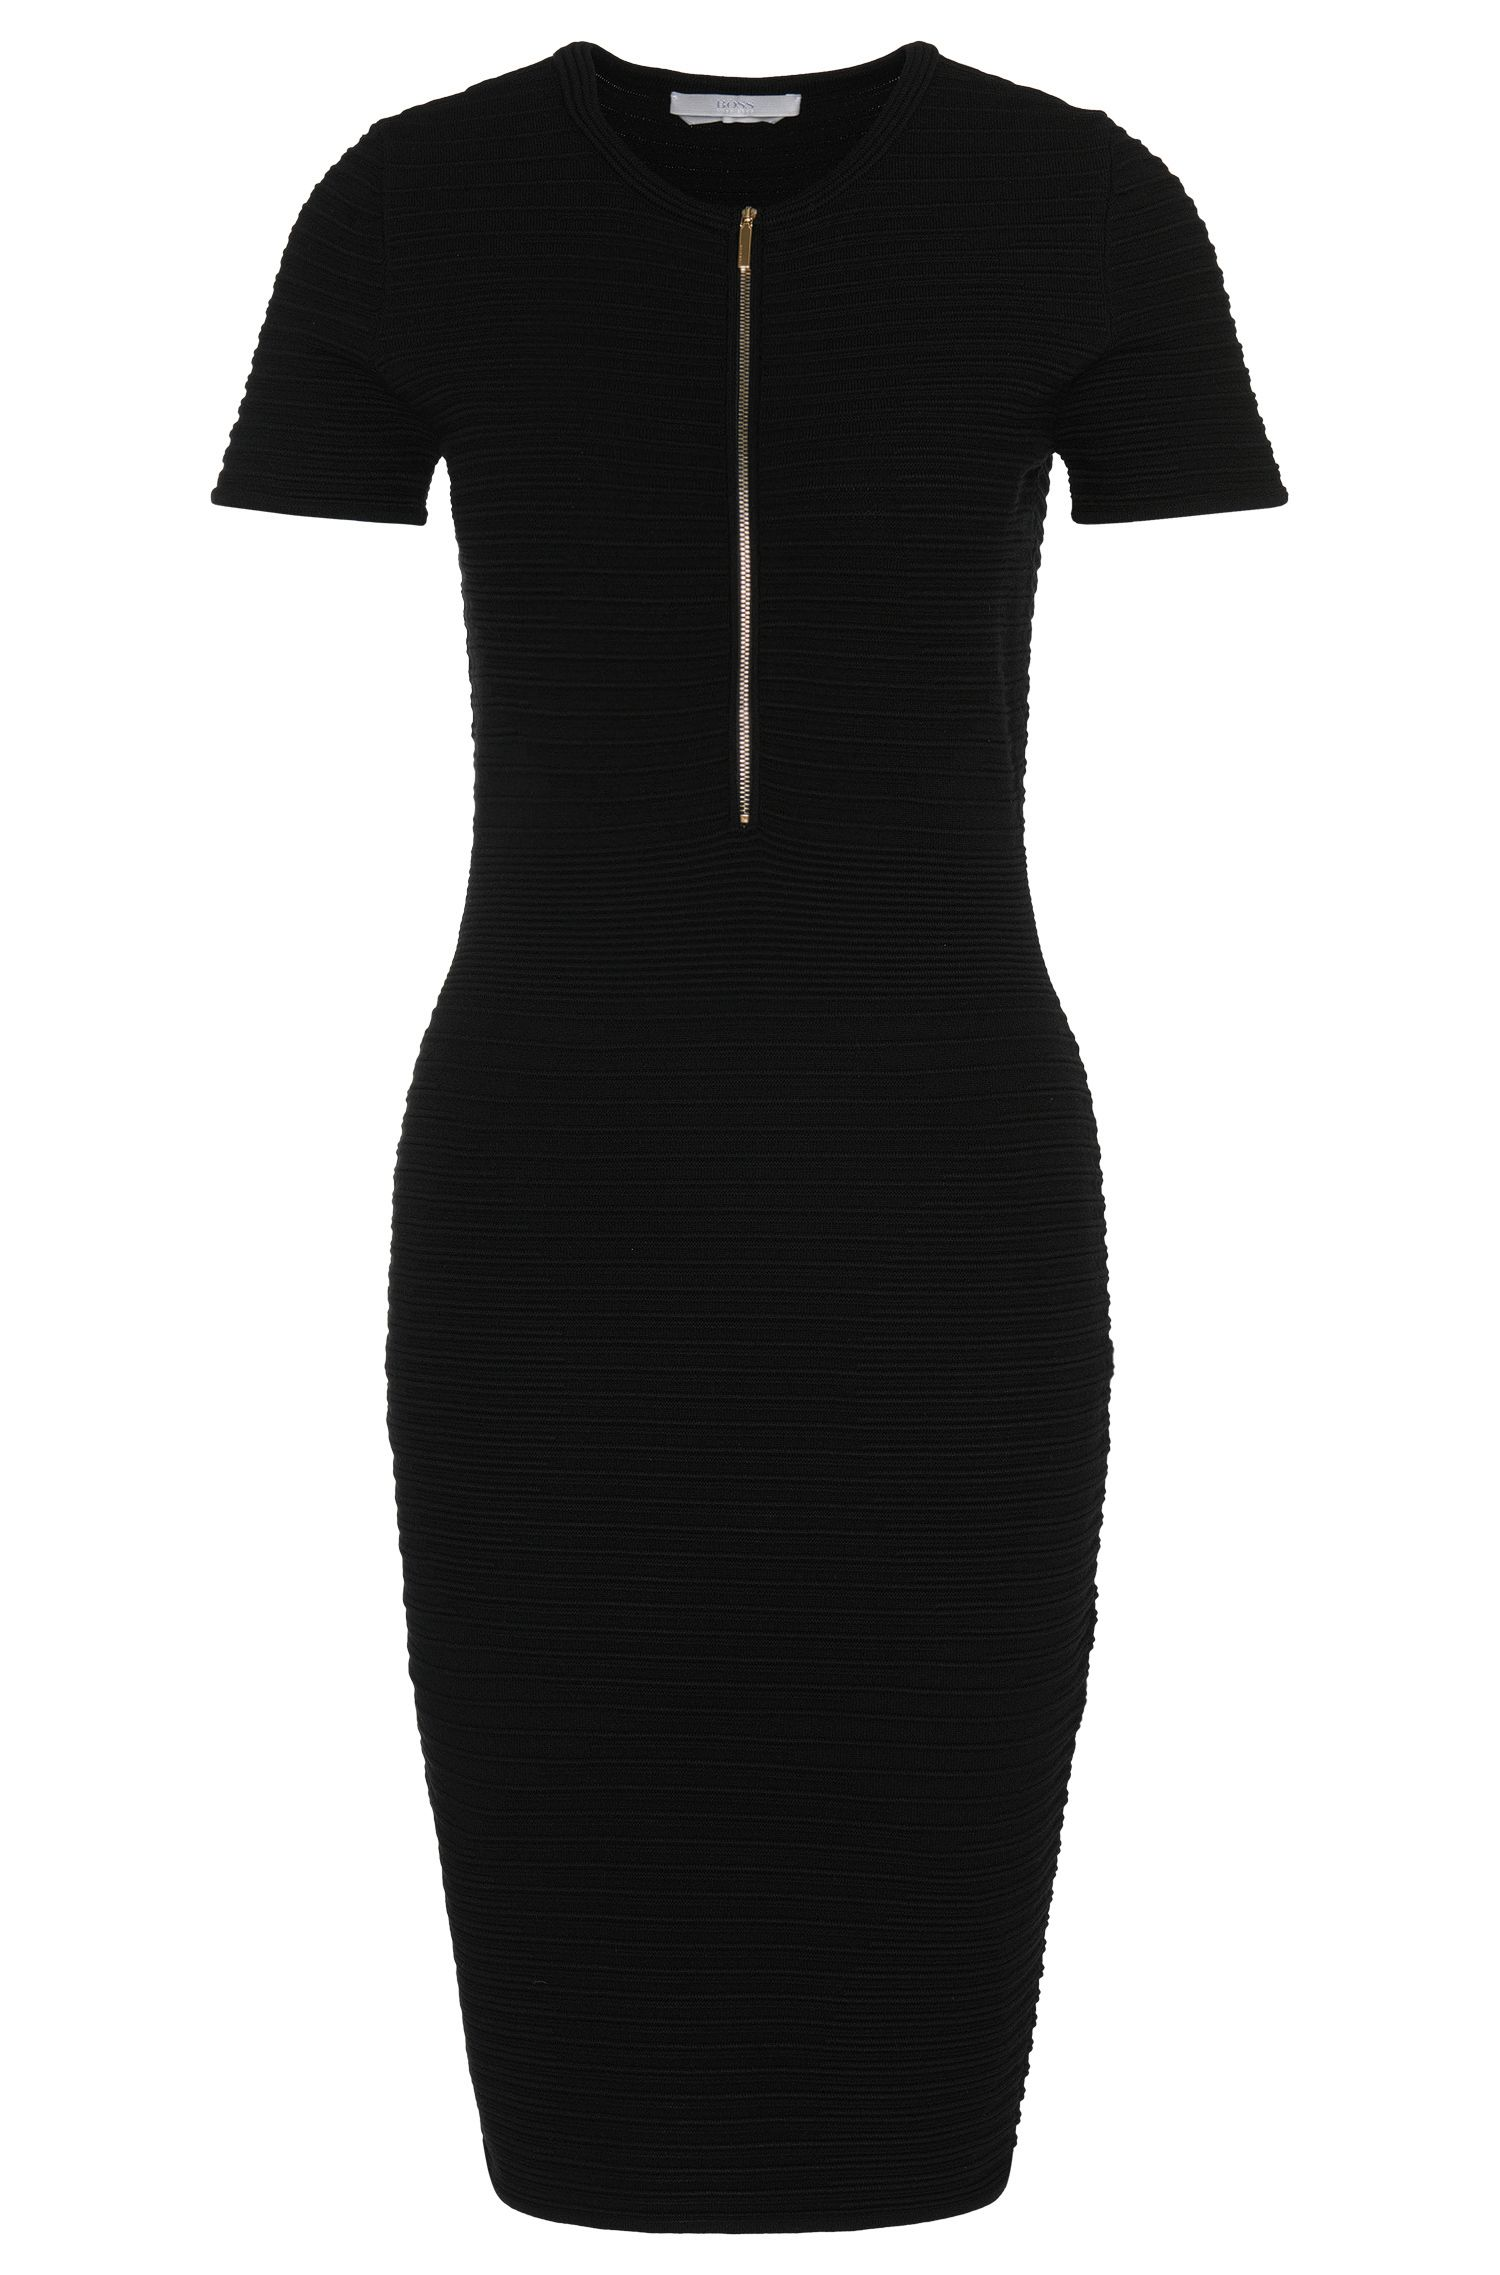 'Feria' | Viscose Ribbed Circle Sheath Dress